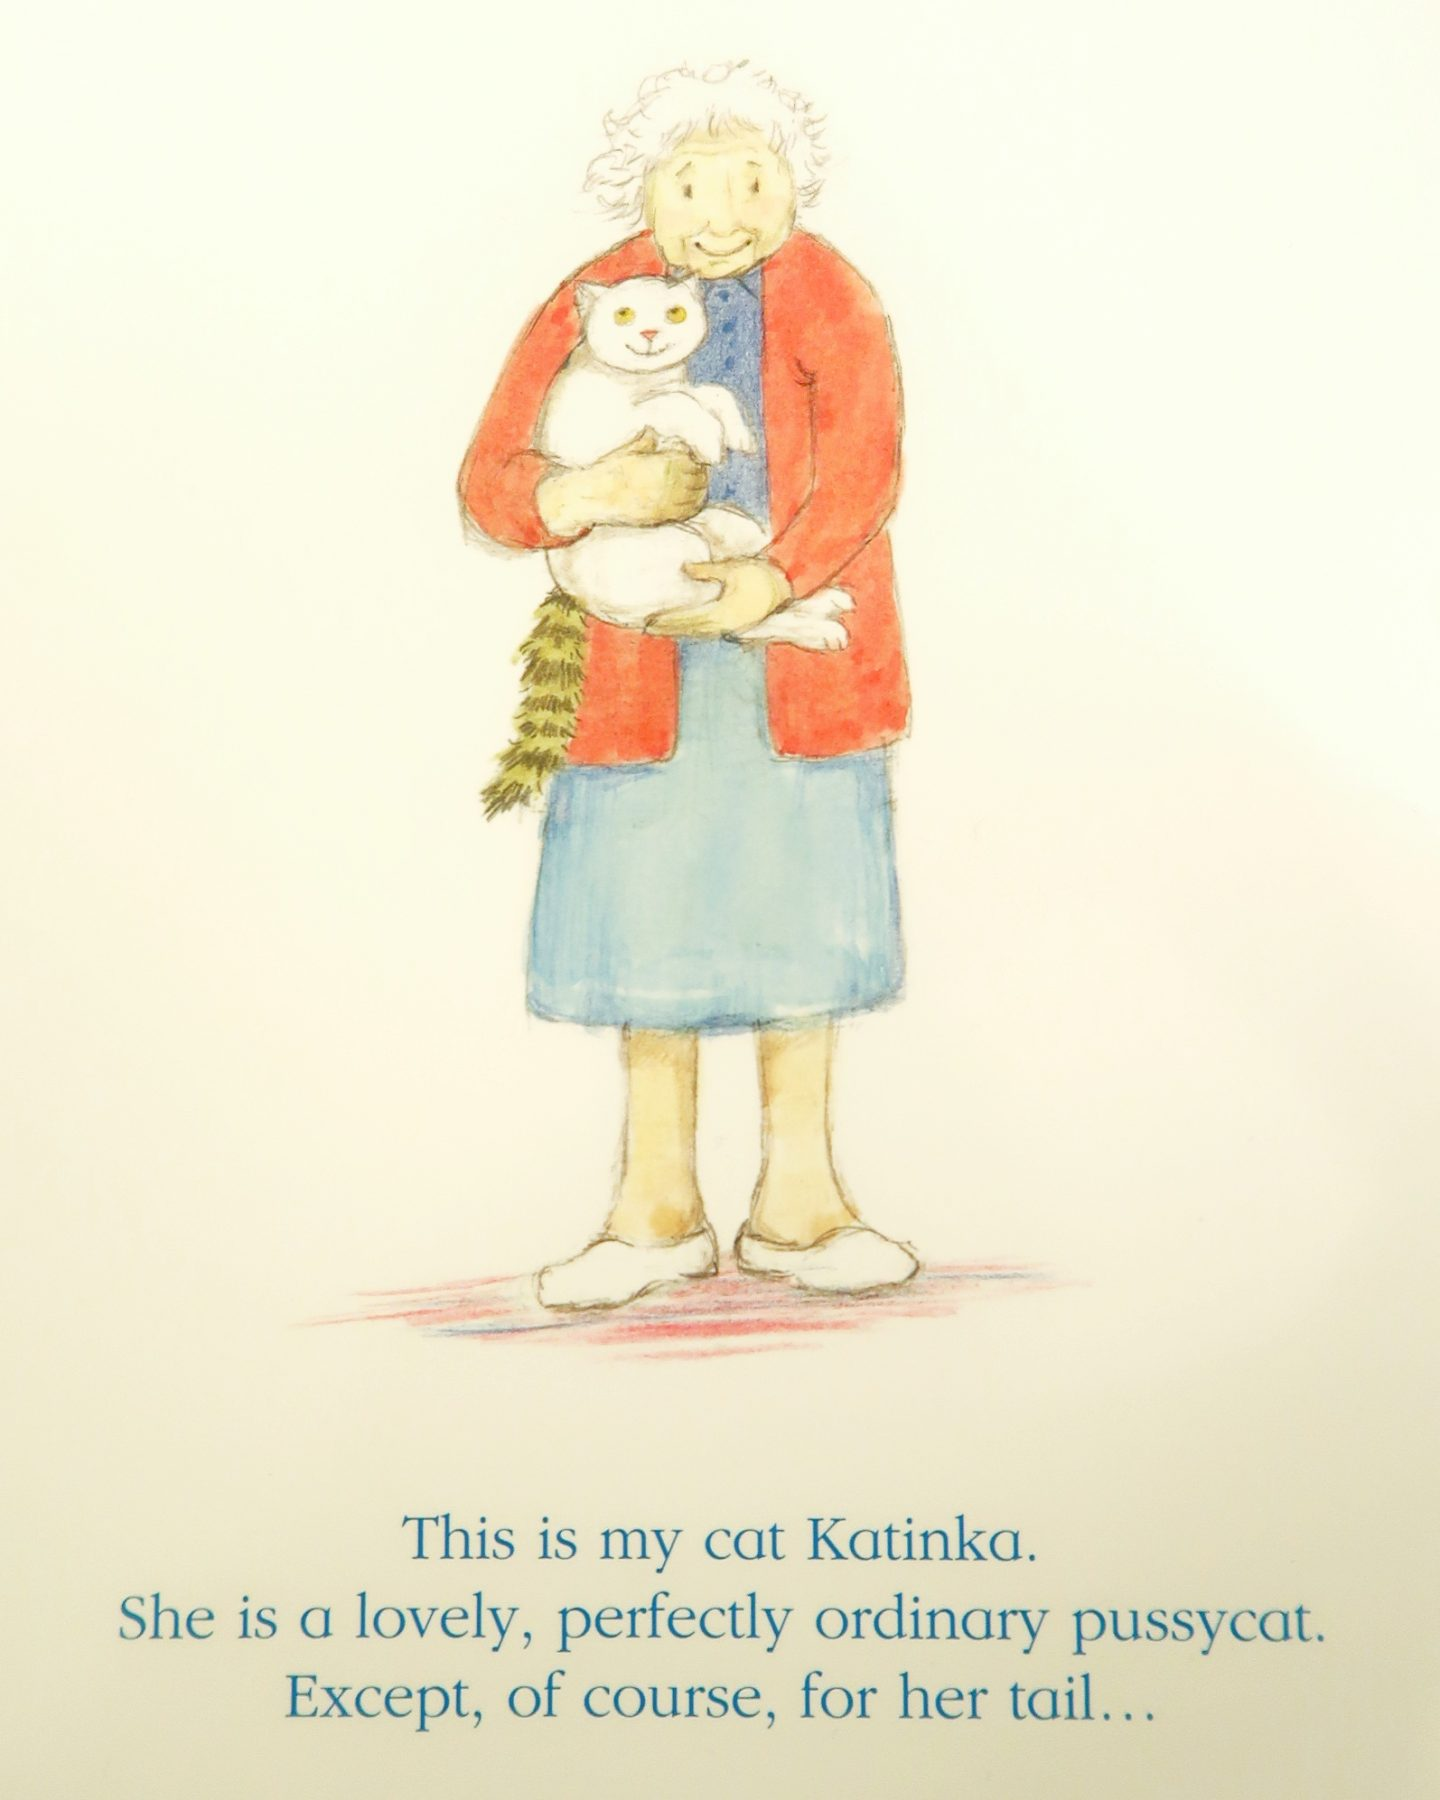 Katinka's Tail - The back of the book showing Katinka and her owner